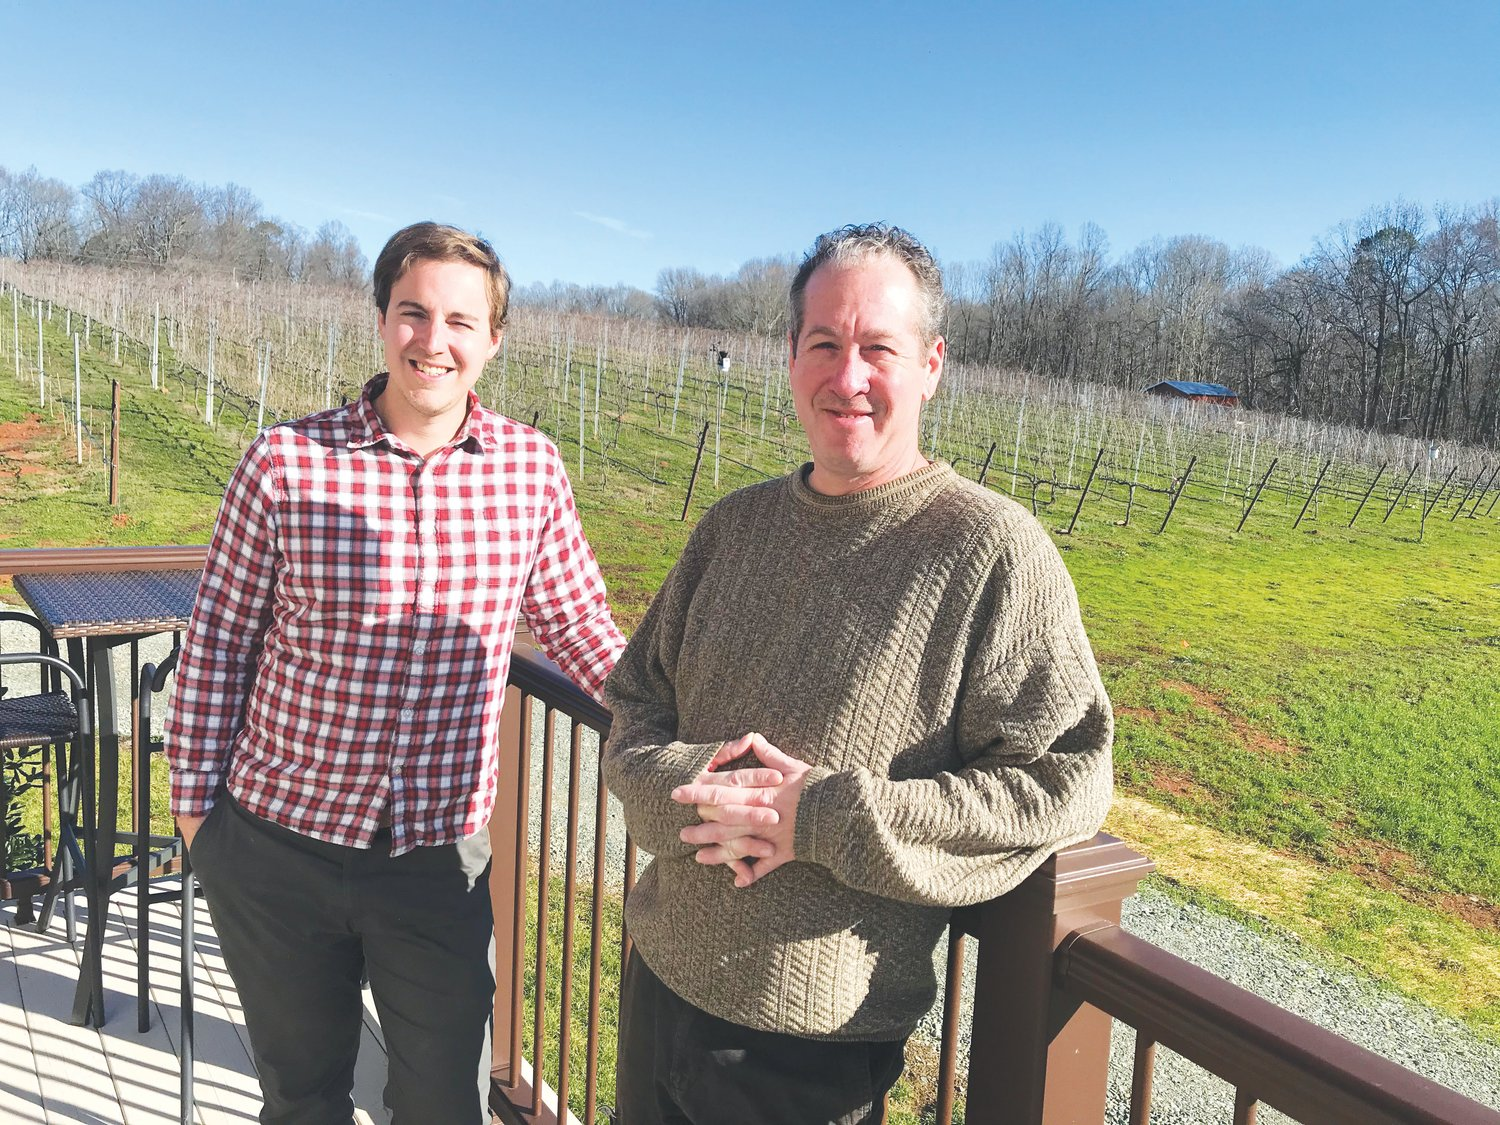 Erik Mitran (left) and Beau Hall pose on a deck overlooking FireClay Cellars' vineyard outside the tasting room there. The vineyard will soon see new growth from 1,200 new vines to be planted this spring.